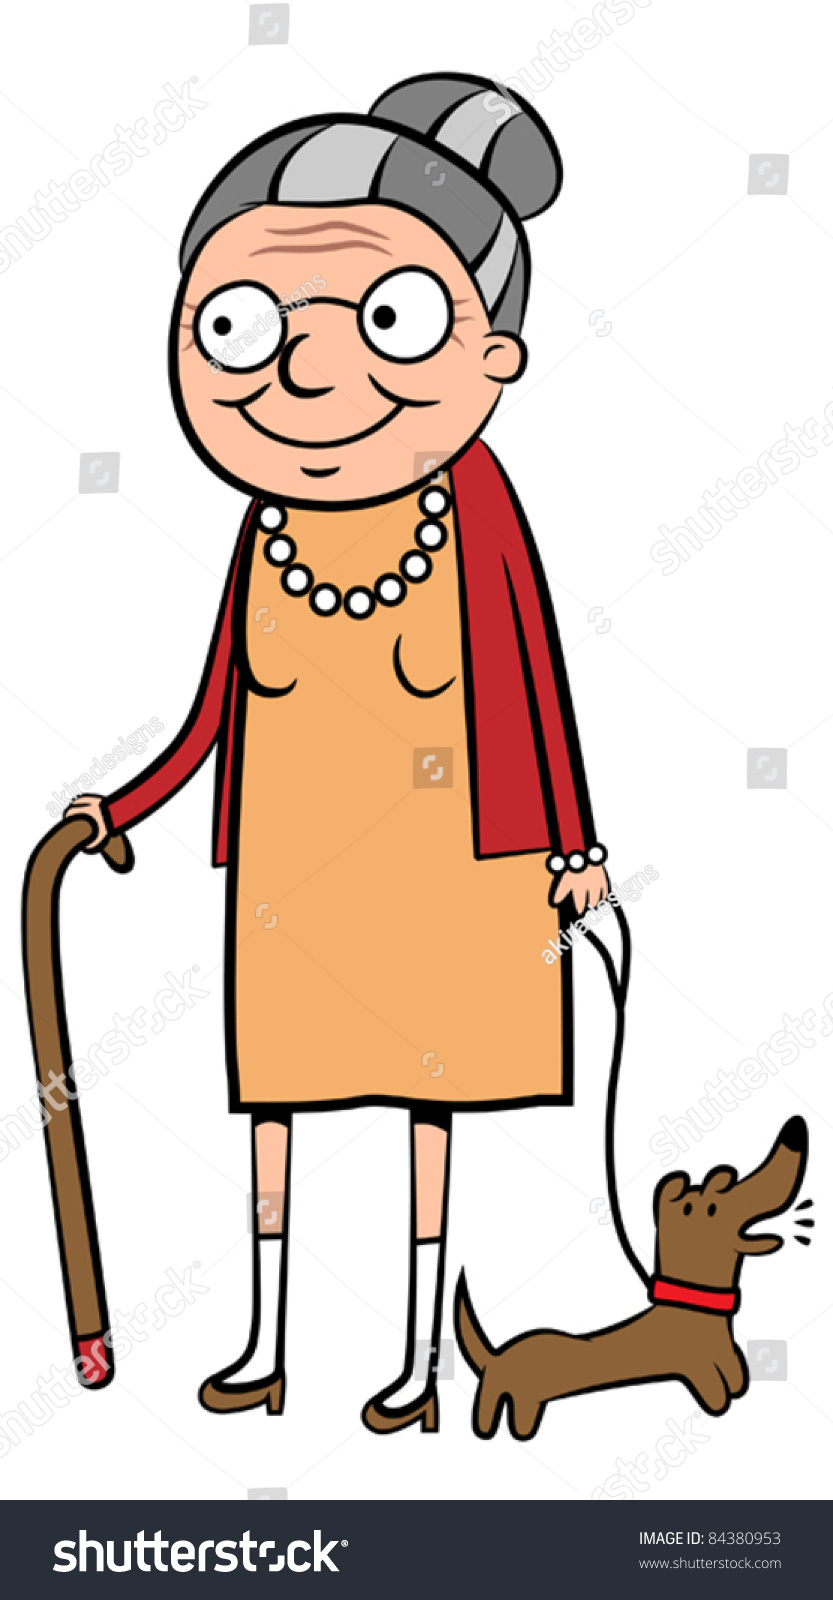 stock-vector-happy-old-cartoon-woman-walking-her-dog-vector-illustration-84380953.jpg